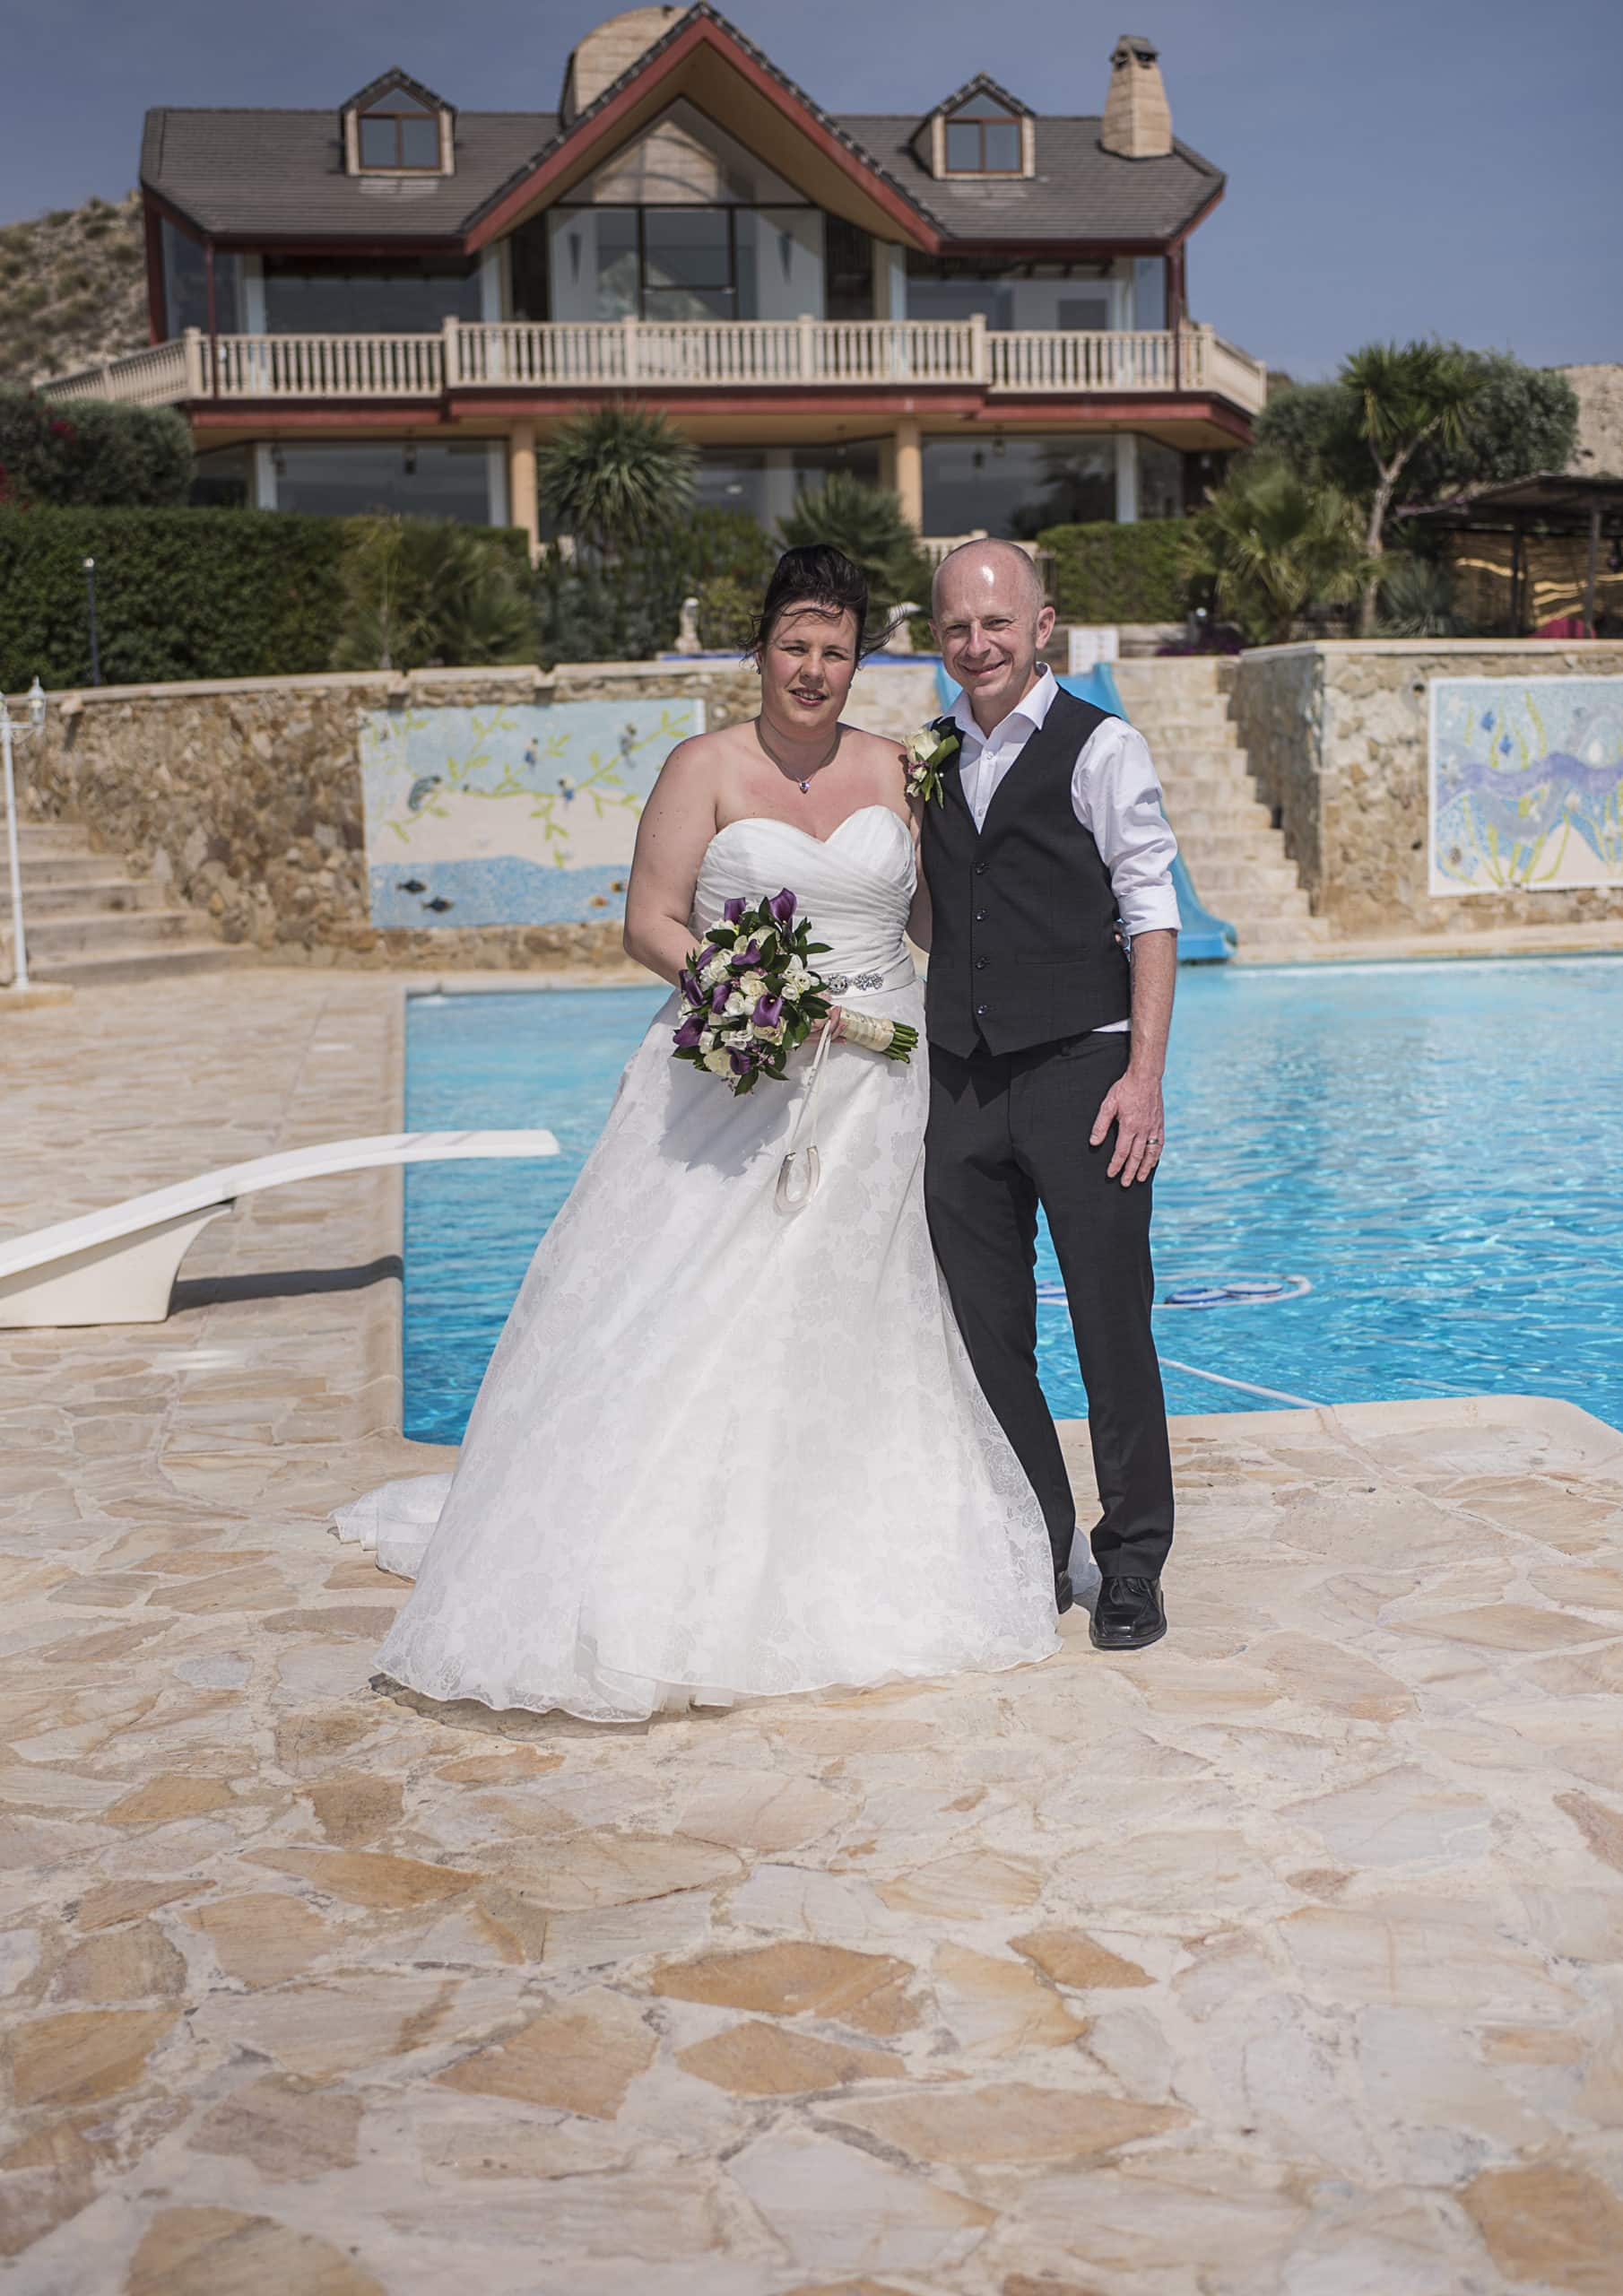 Casa La Pedrera wedding: Gary and Leeann Lilburn a day they will never forget.